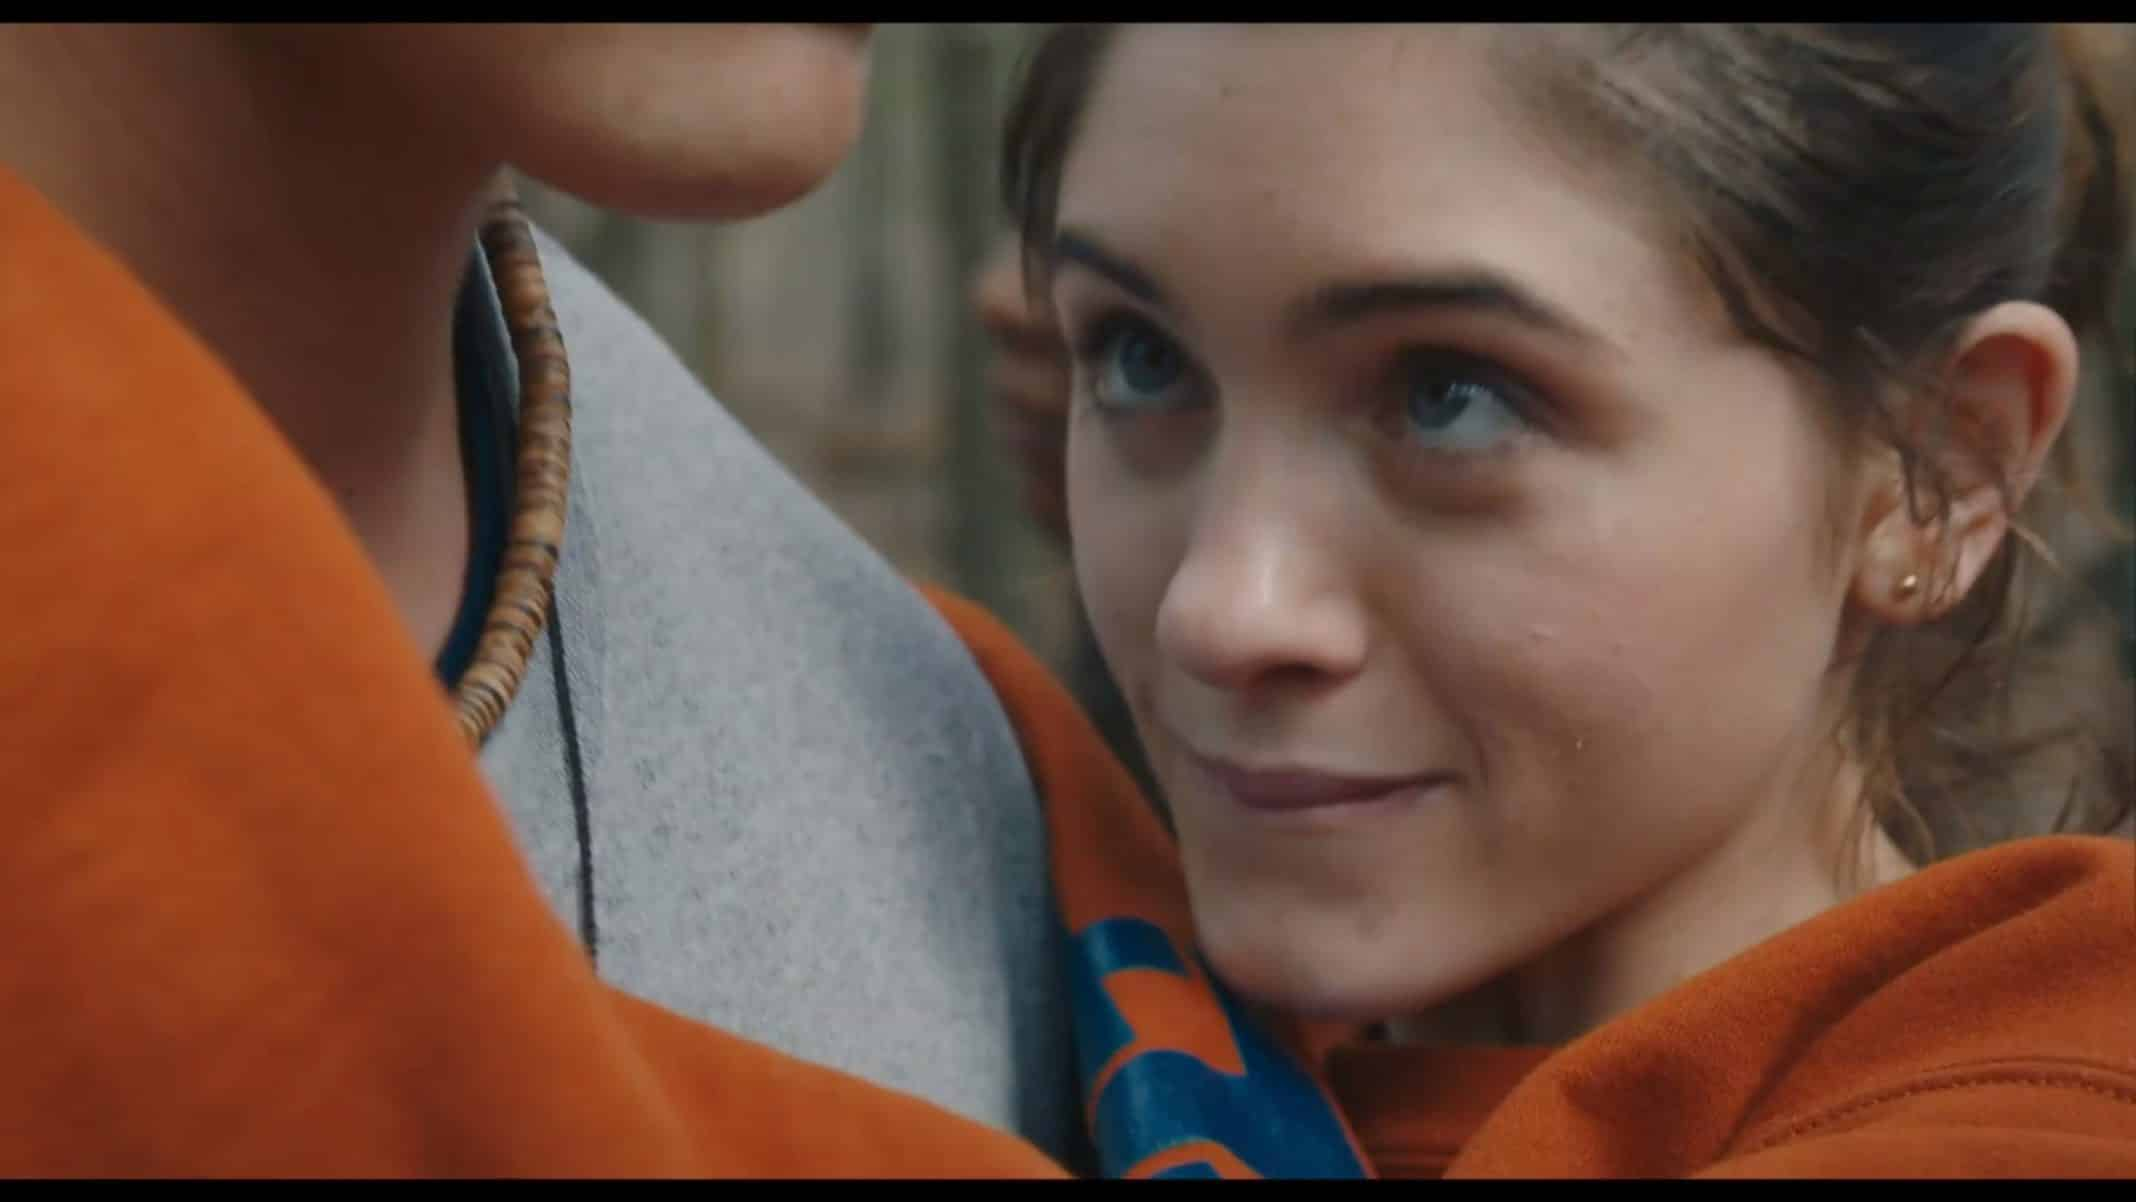 Alice (Natalia Dyer) smiling while in Chris' arms.